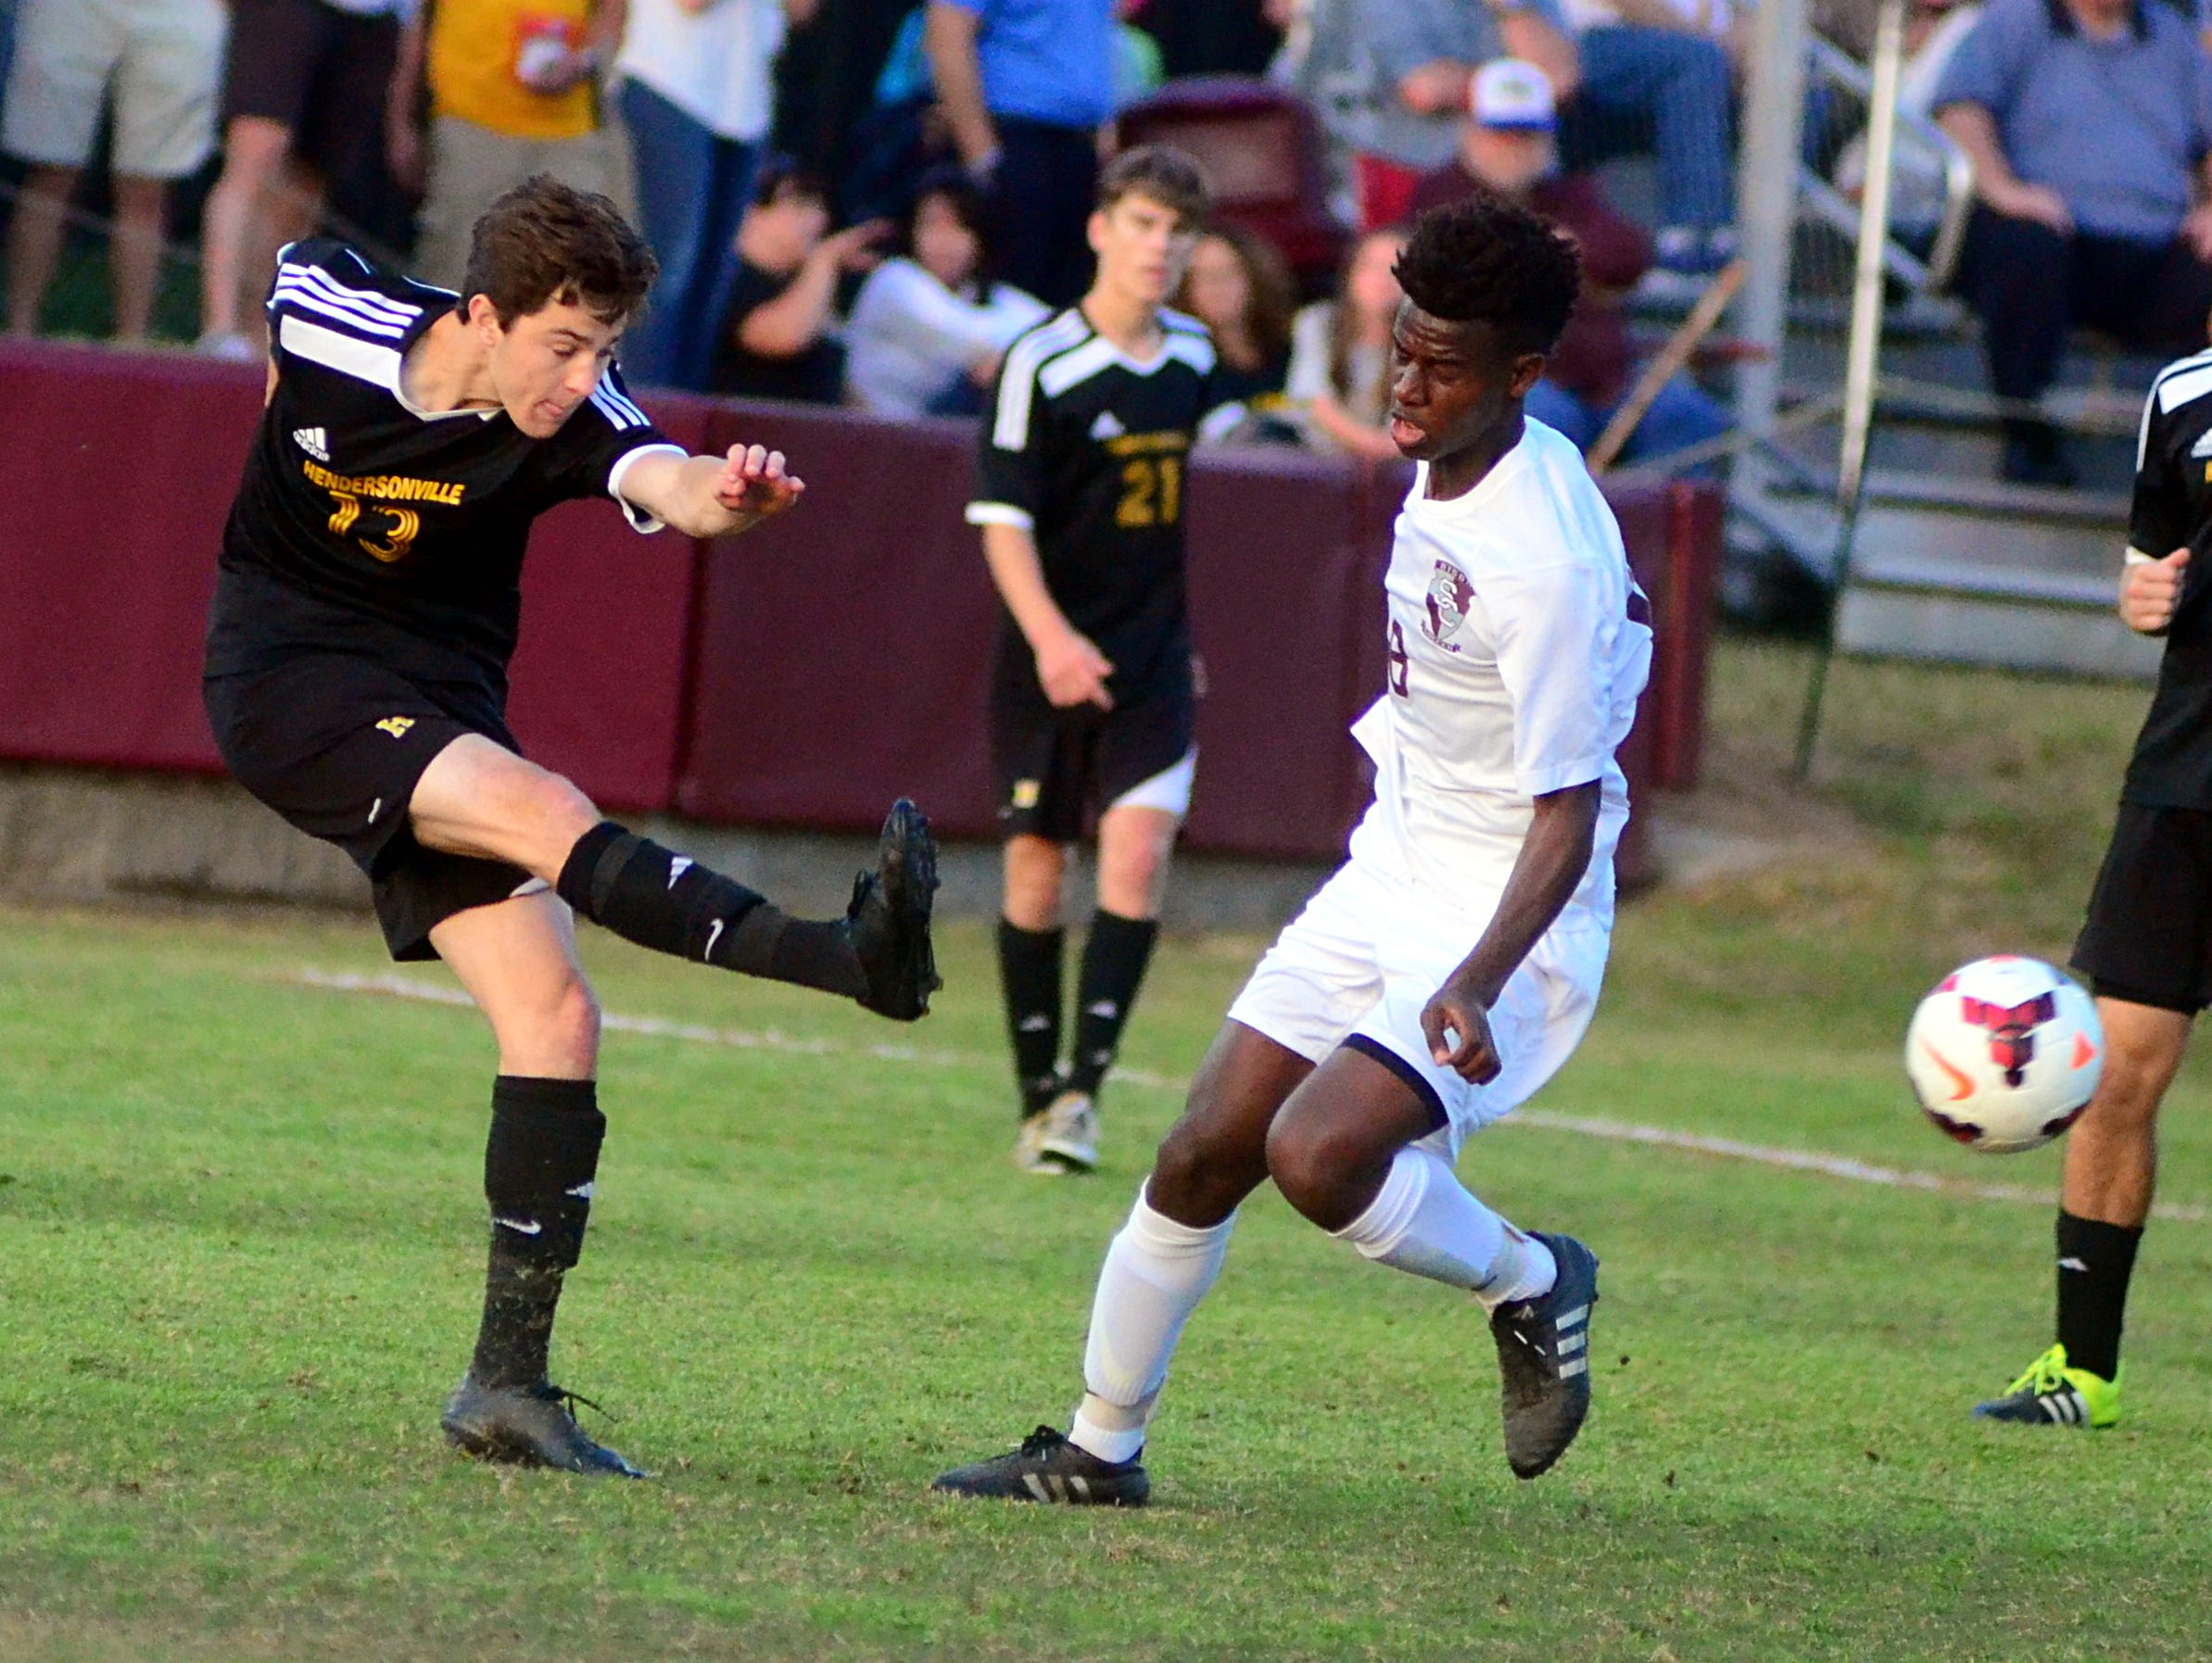 Hendersonville High senior Cole Egan steps into a shot in front of Station Camp sophomore Atakelti Gebregzabher during first-half action.